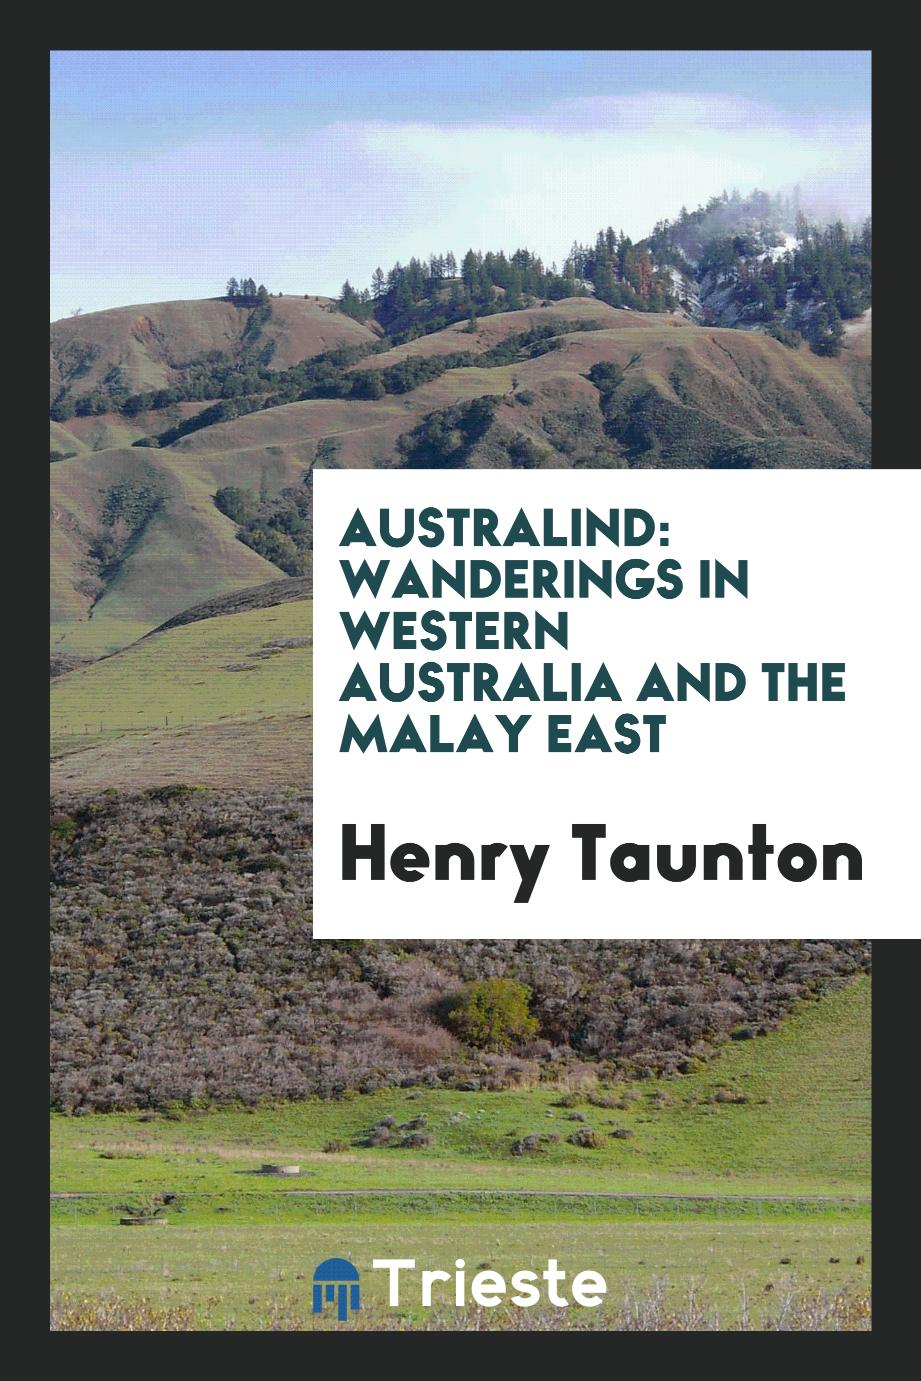 Australind: wanderings in Western Australia and the Malay East